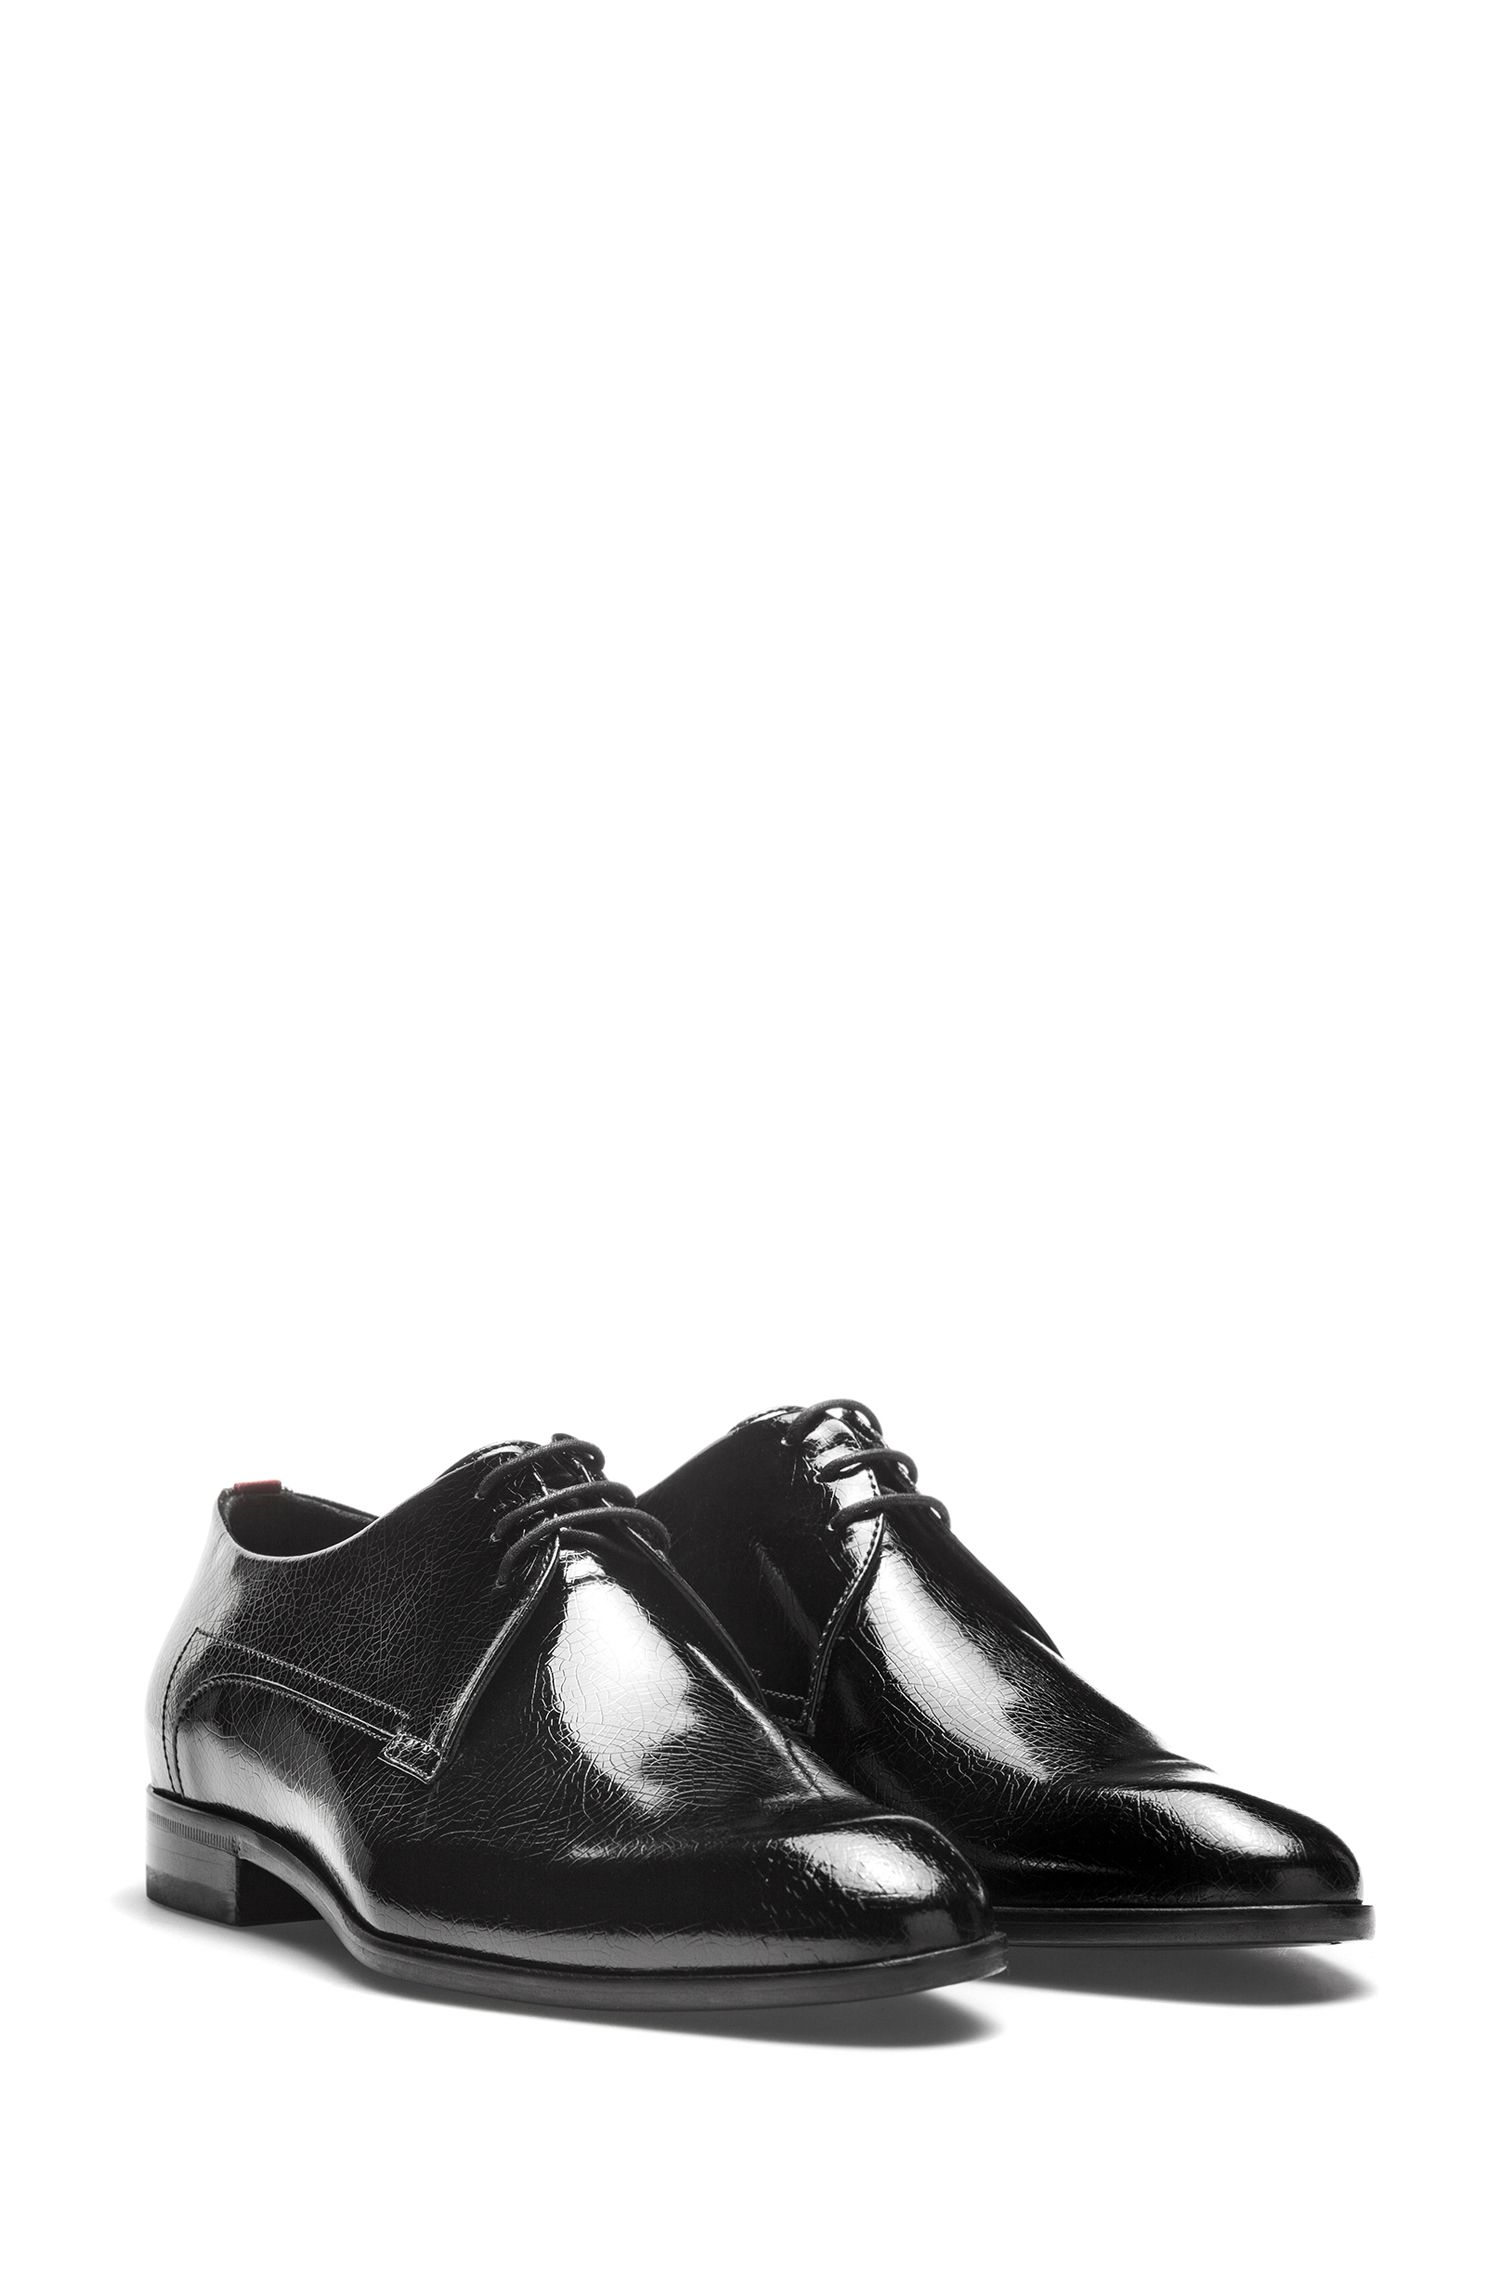 Patent calf-leather Derby shoes